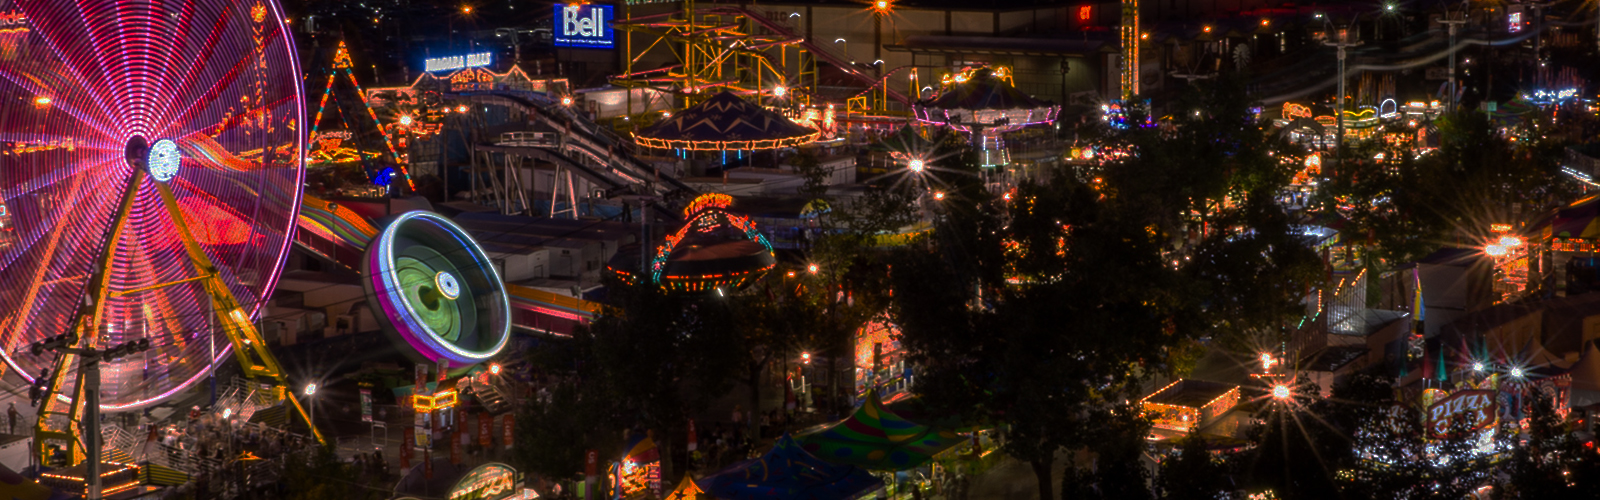 Calgary Stampede Events Amp Attractions July 5 14 2019